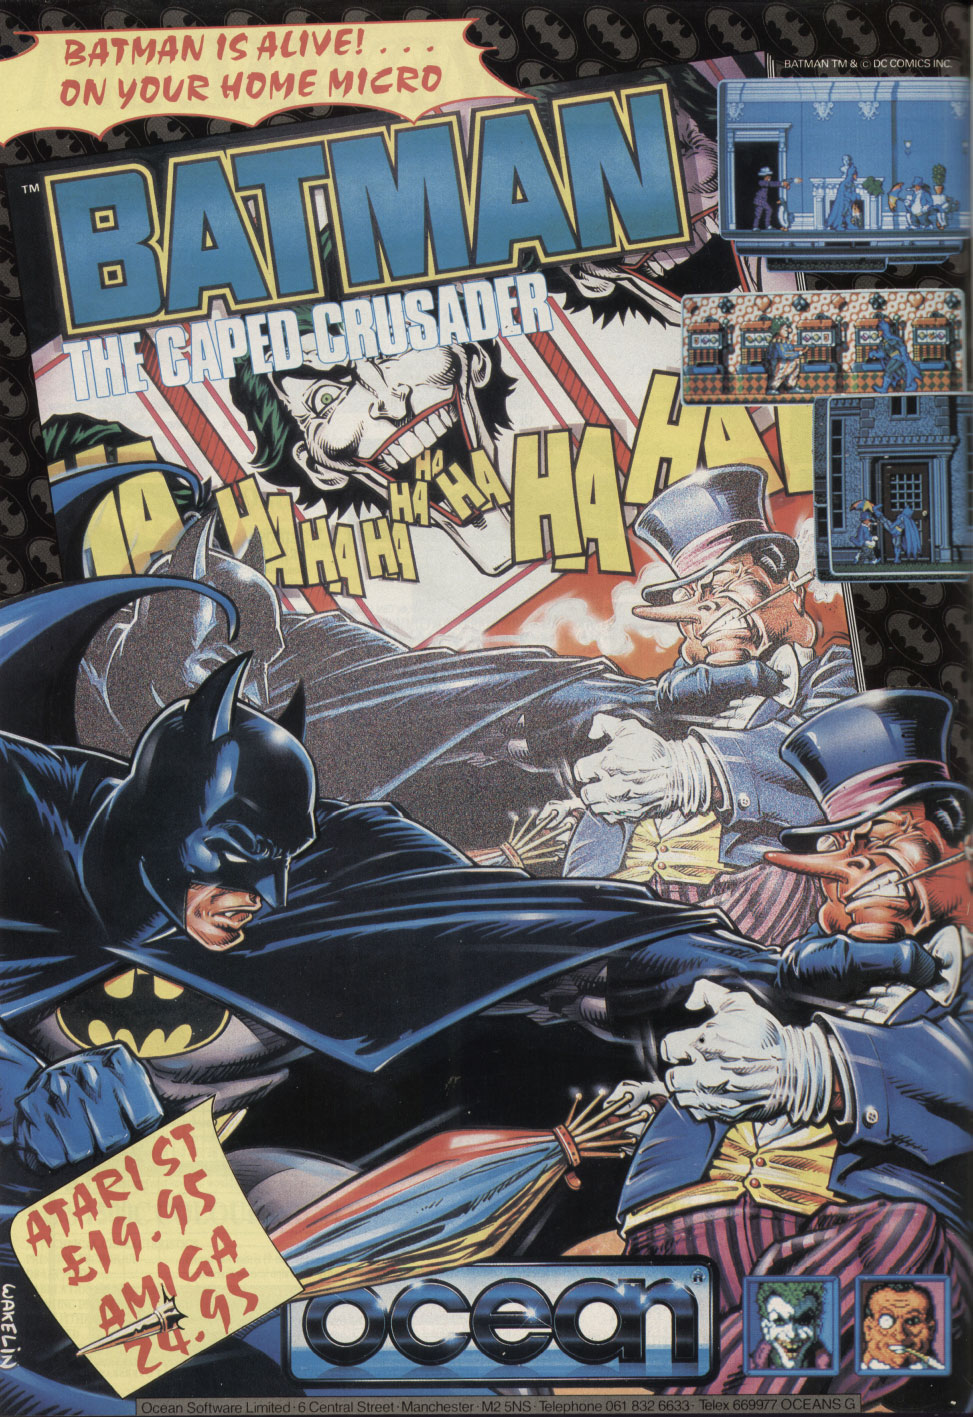 magazine review caped crusader You're harder to kill than a cockroach on steroids, complains the joker to batman after a brutal clash from which the caped crusader emerges miraculously.